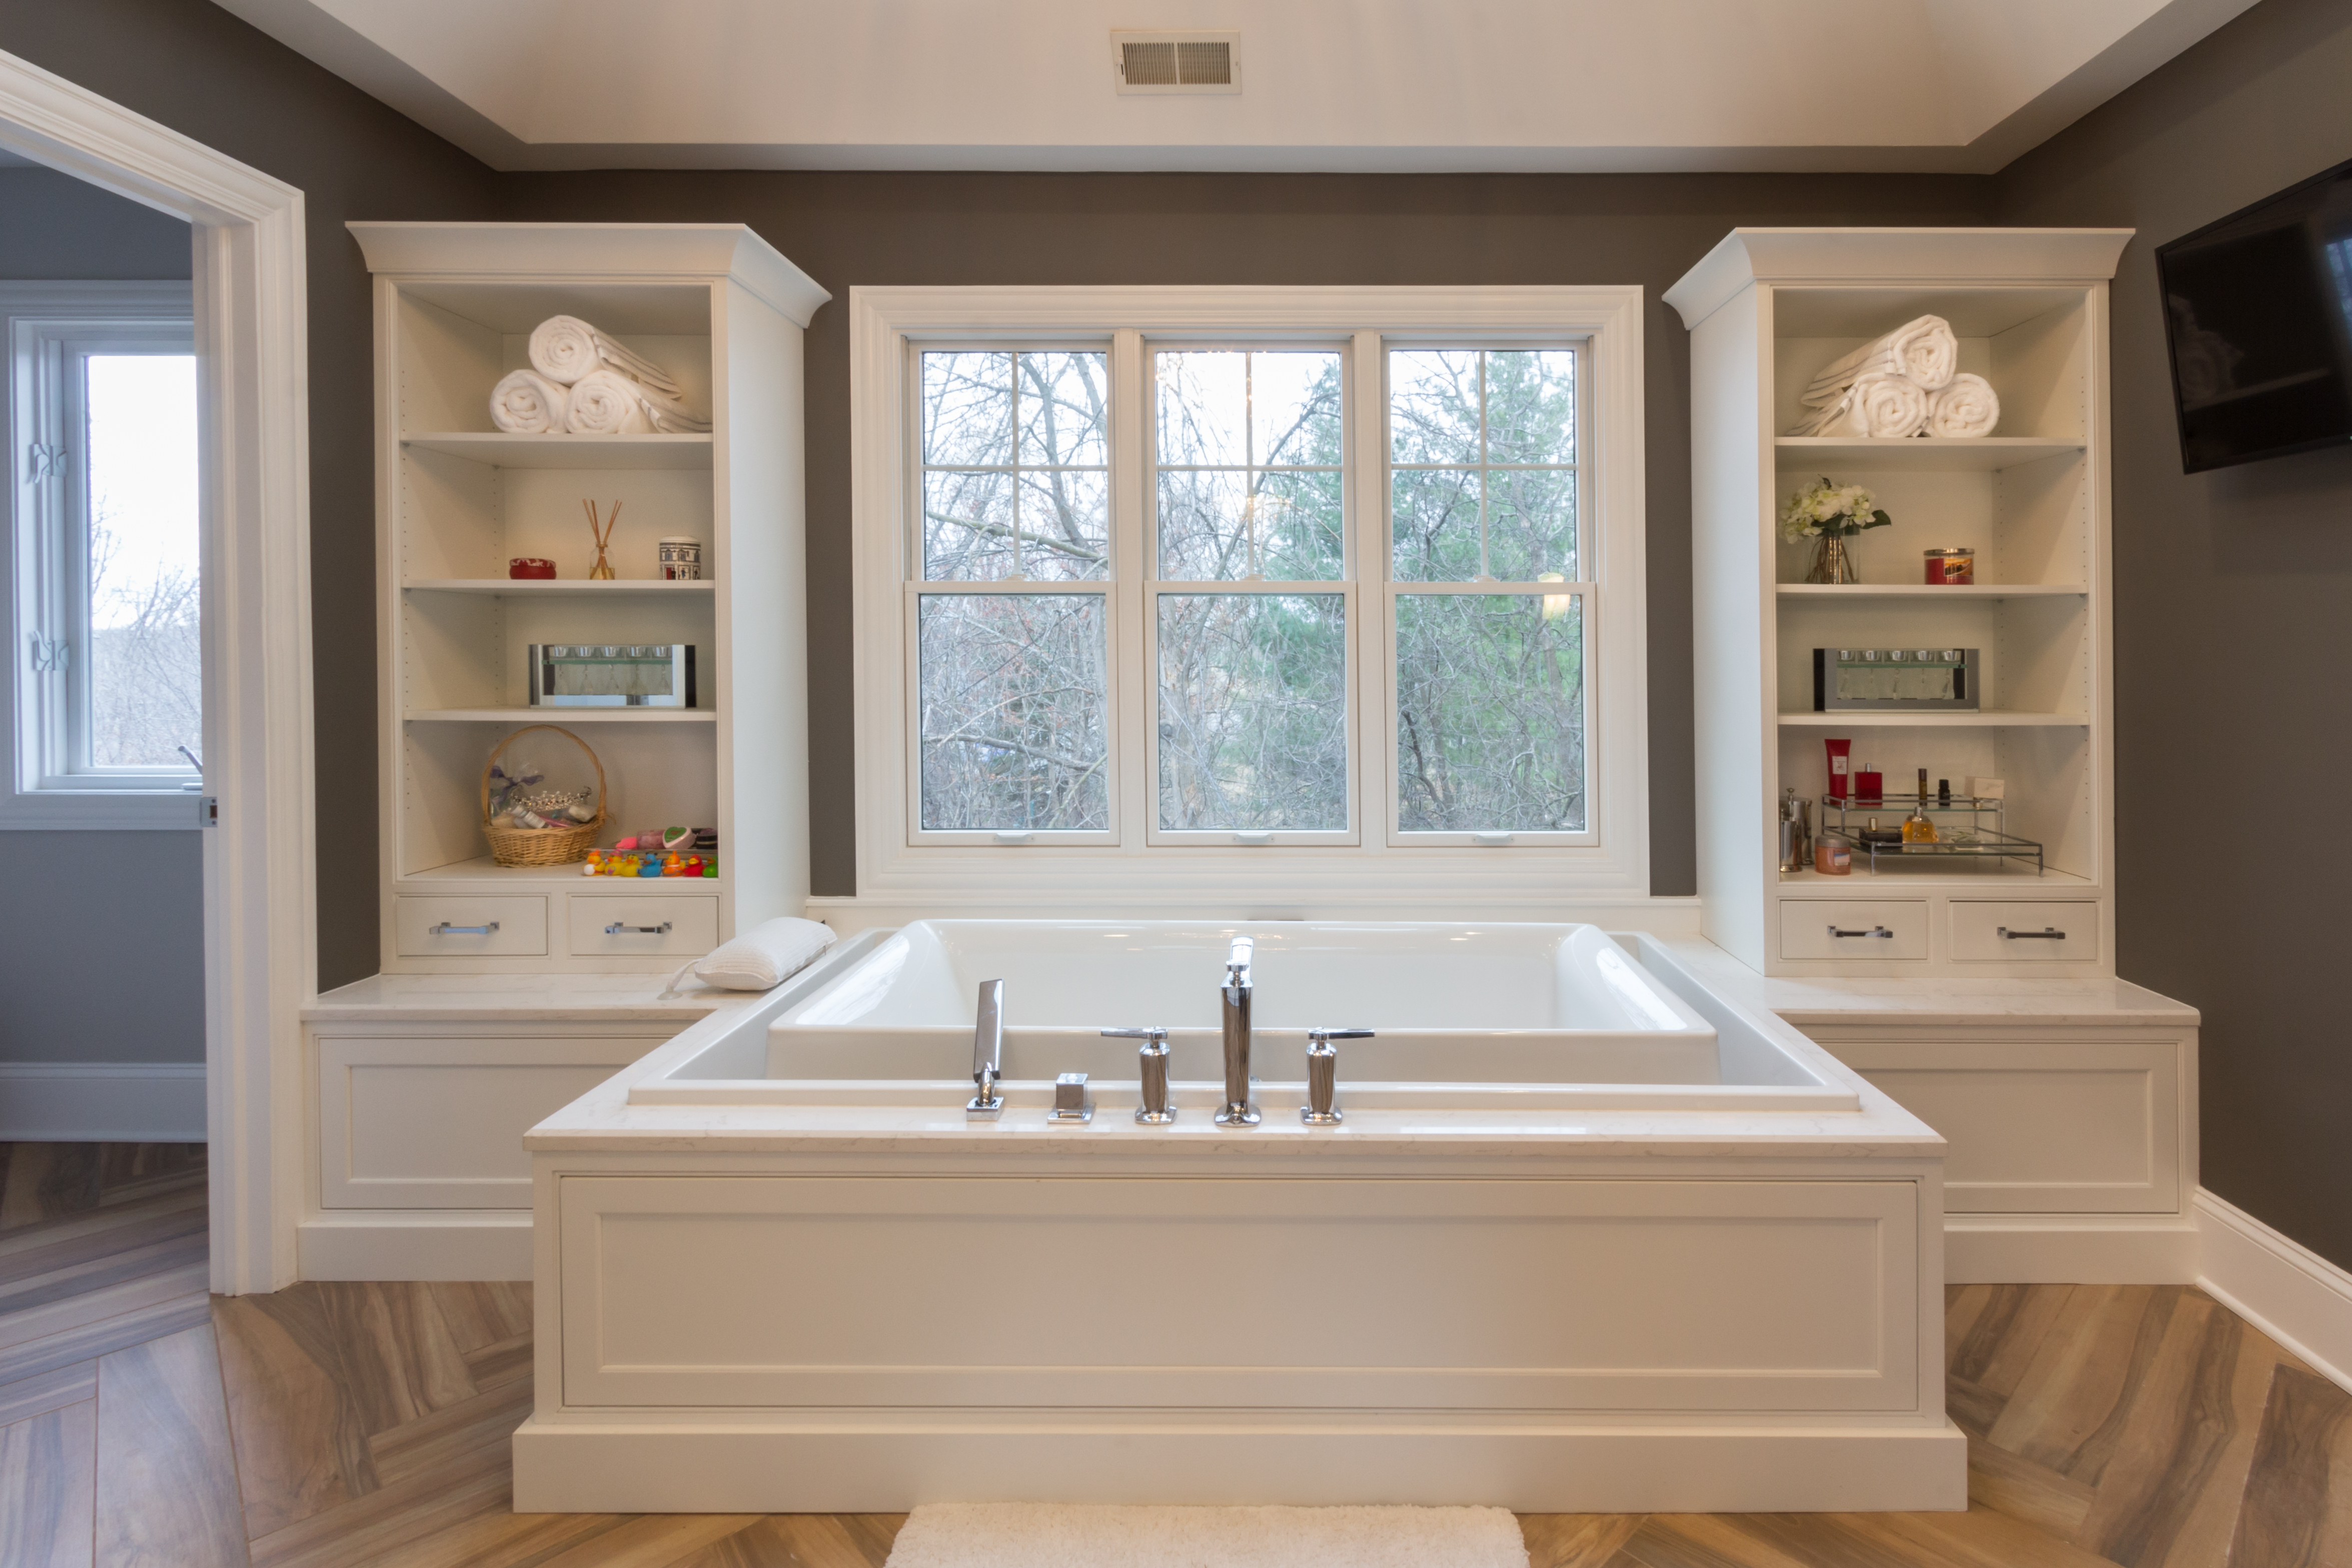 Large overflow tub under a picture window with built in shelving units on either side.